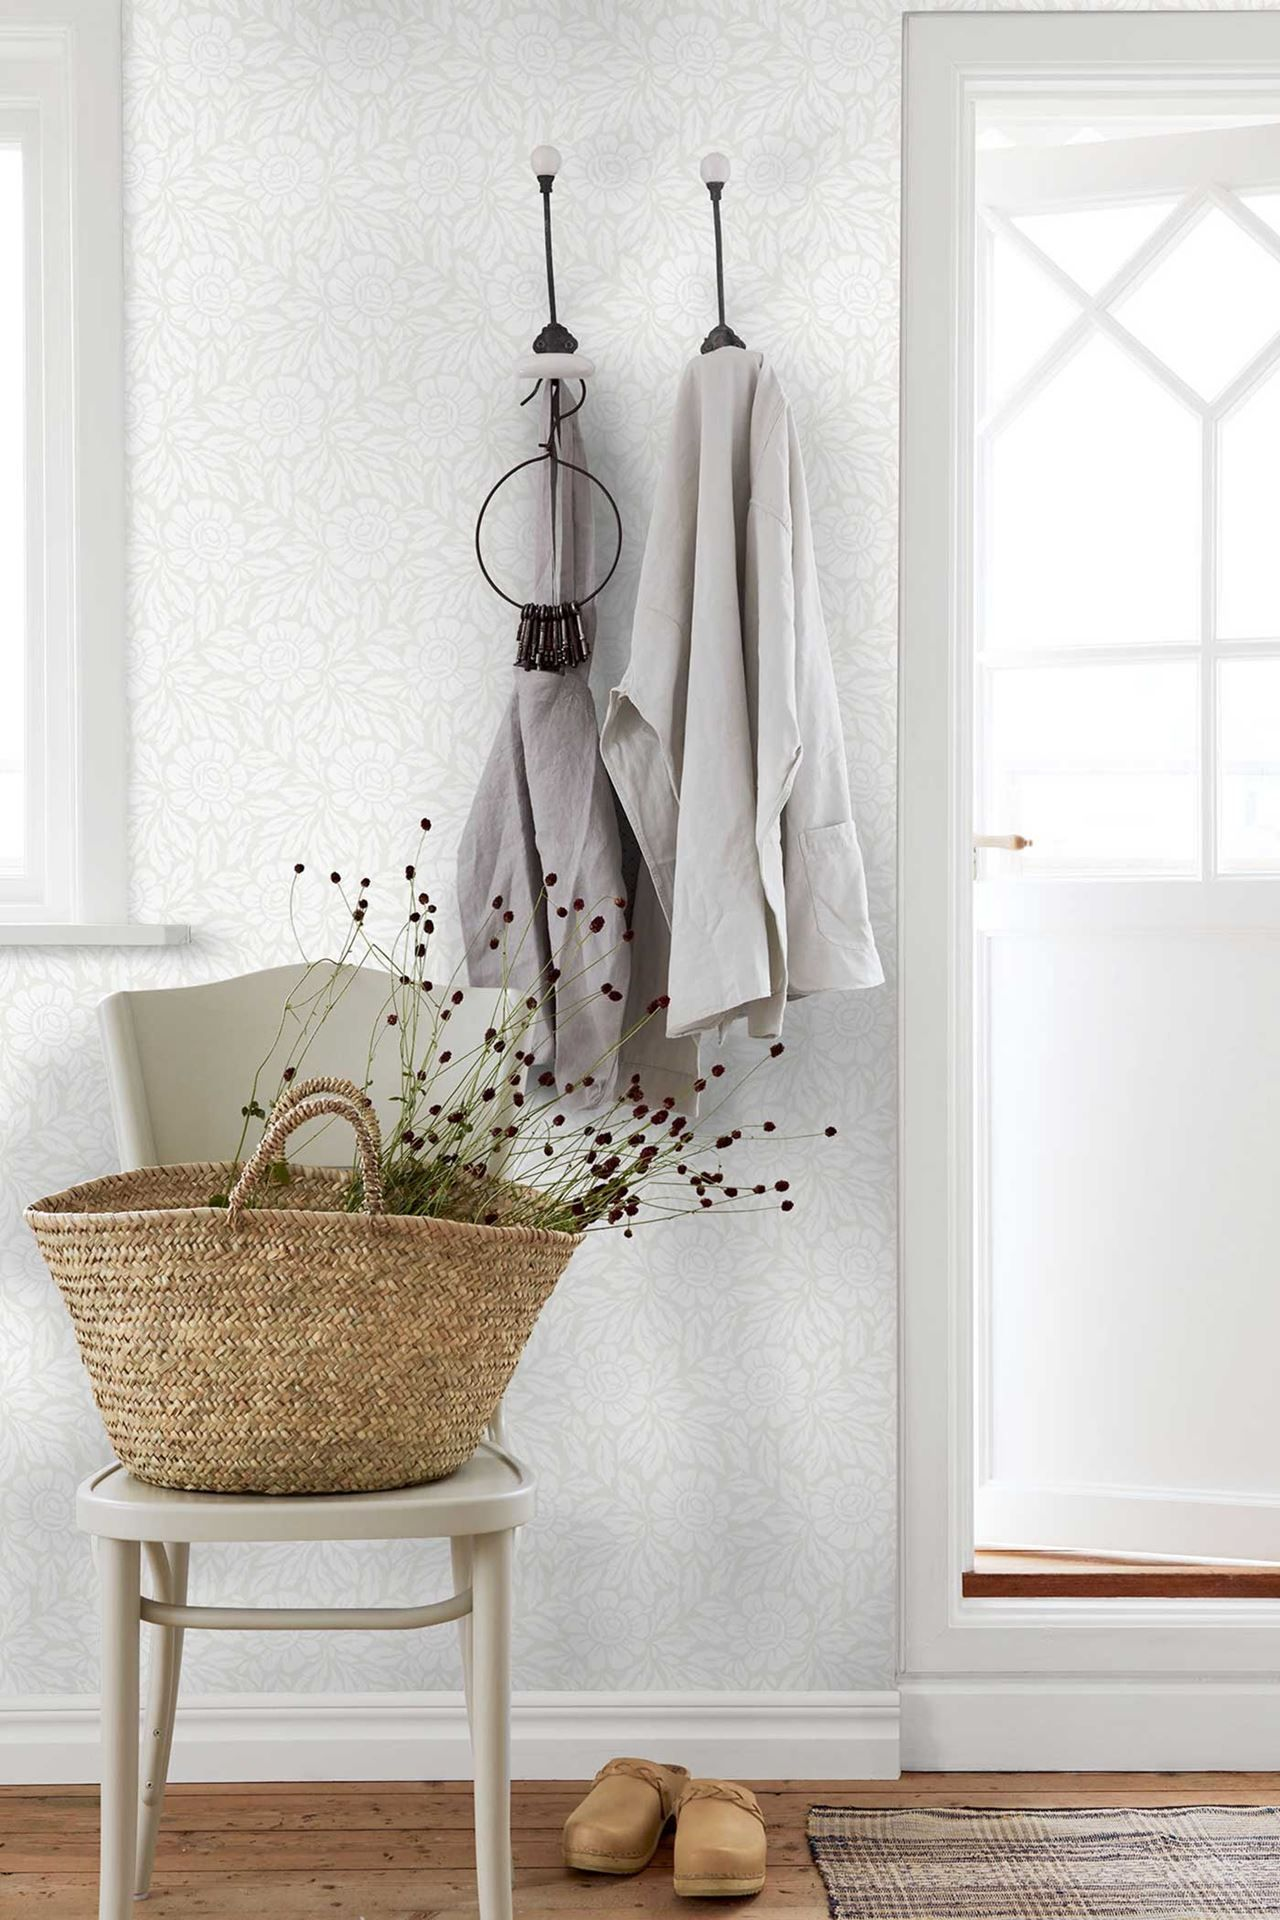 Jennyscandinavian design wallpaper bers from collection by borastapeter and eco hallway also rh pinterest